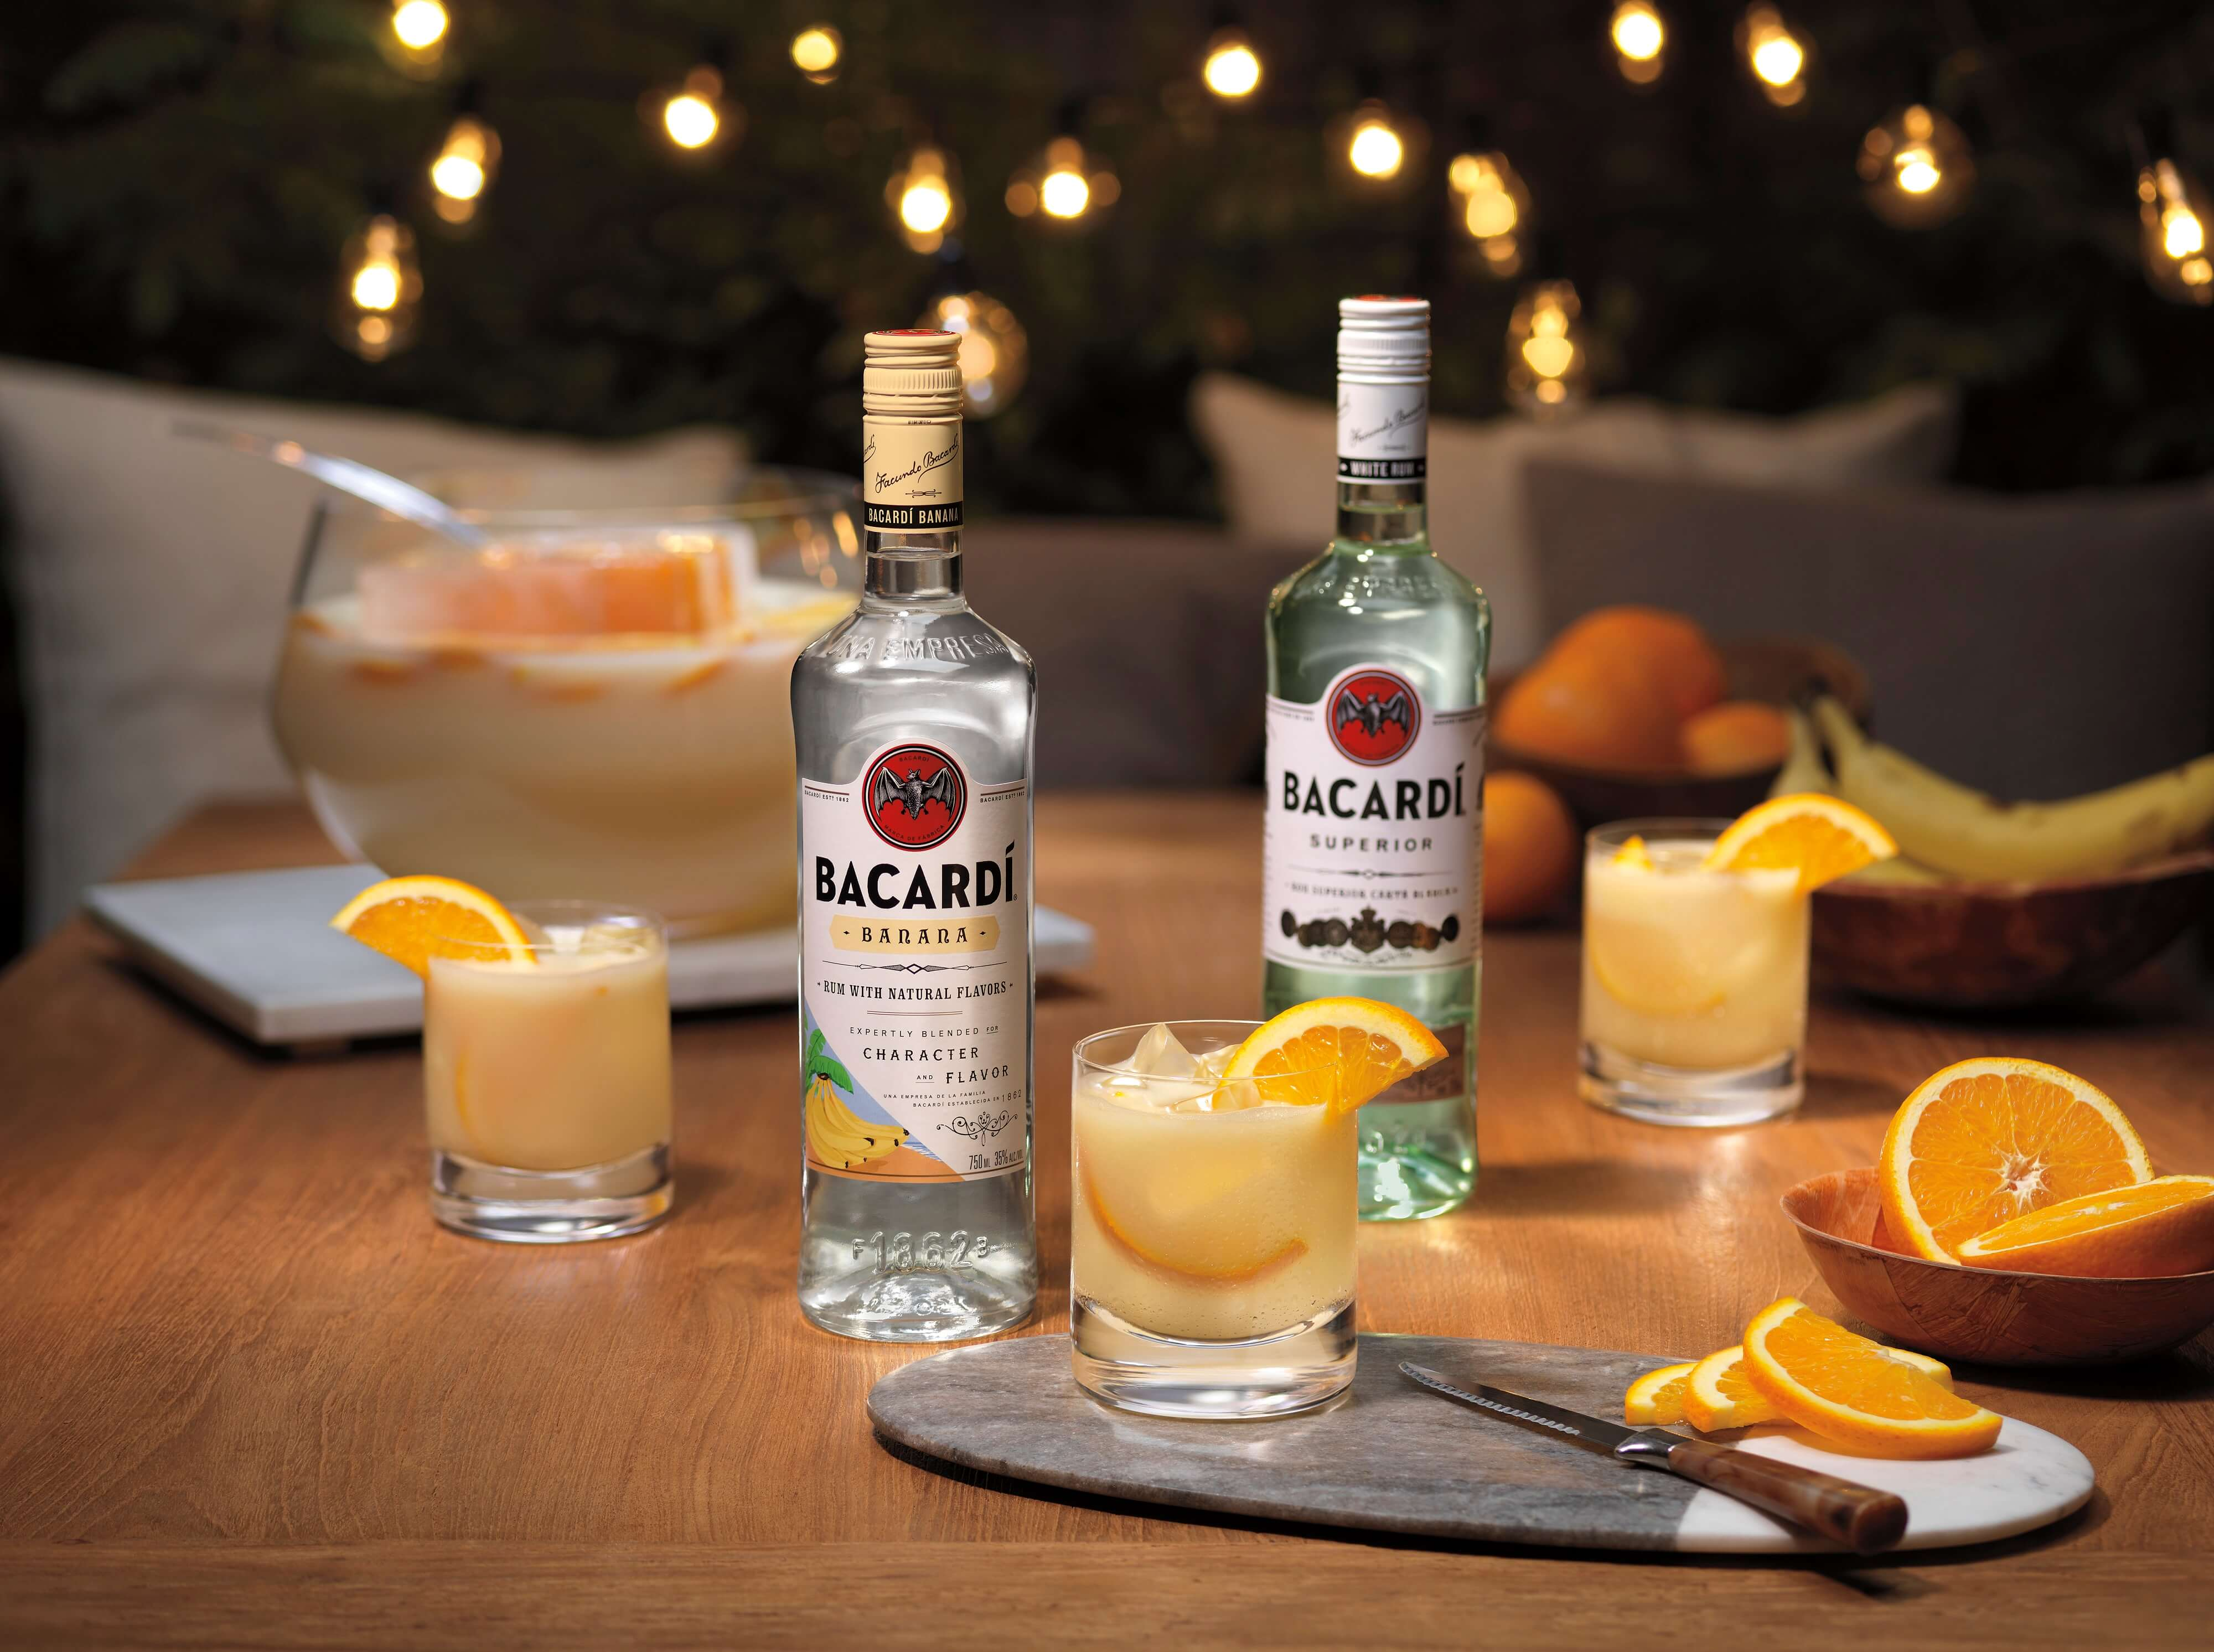 Bacardí Tropical Rum Punch cocktail - Piña Colada recipes for National Piña Colada Day and the summer